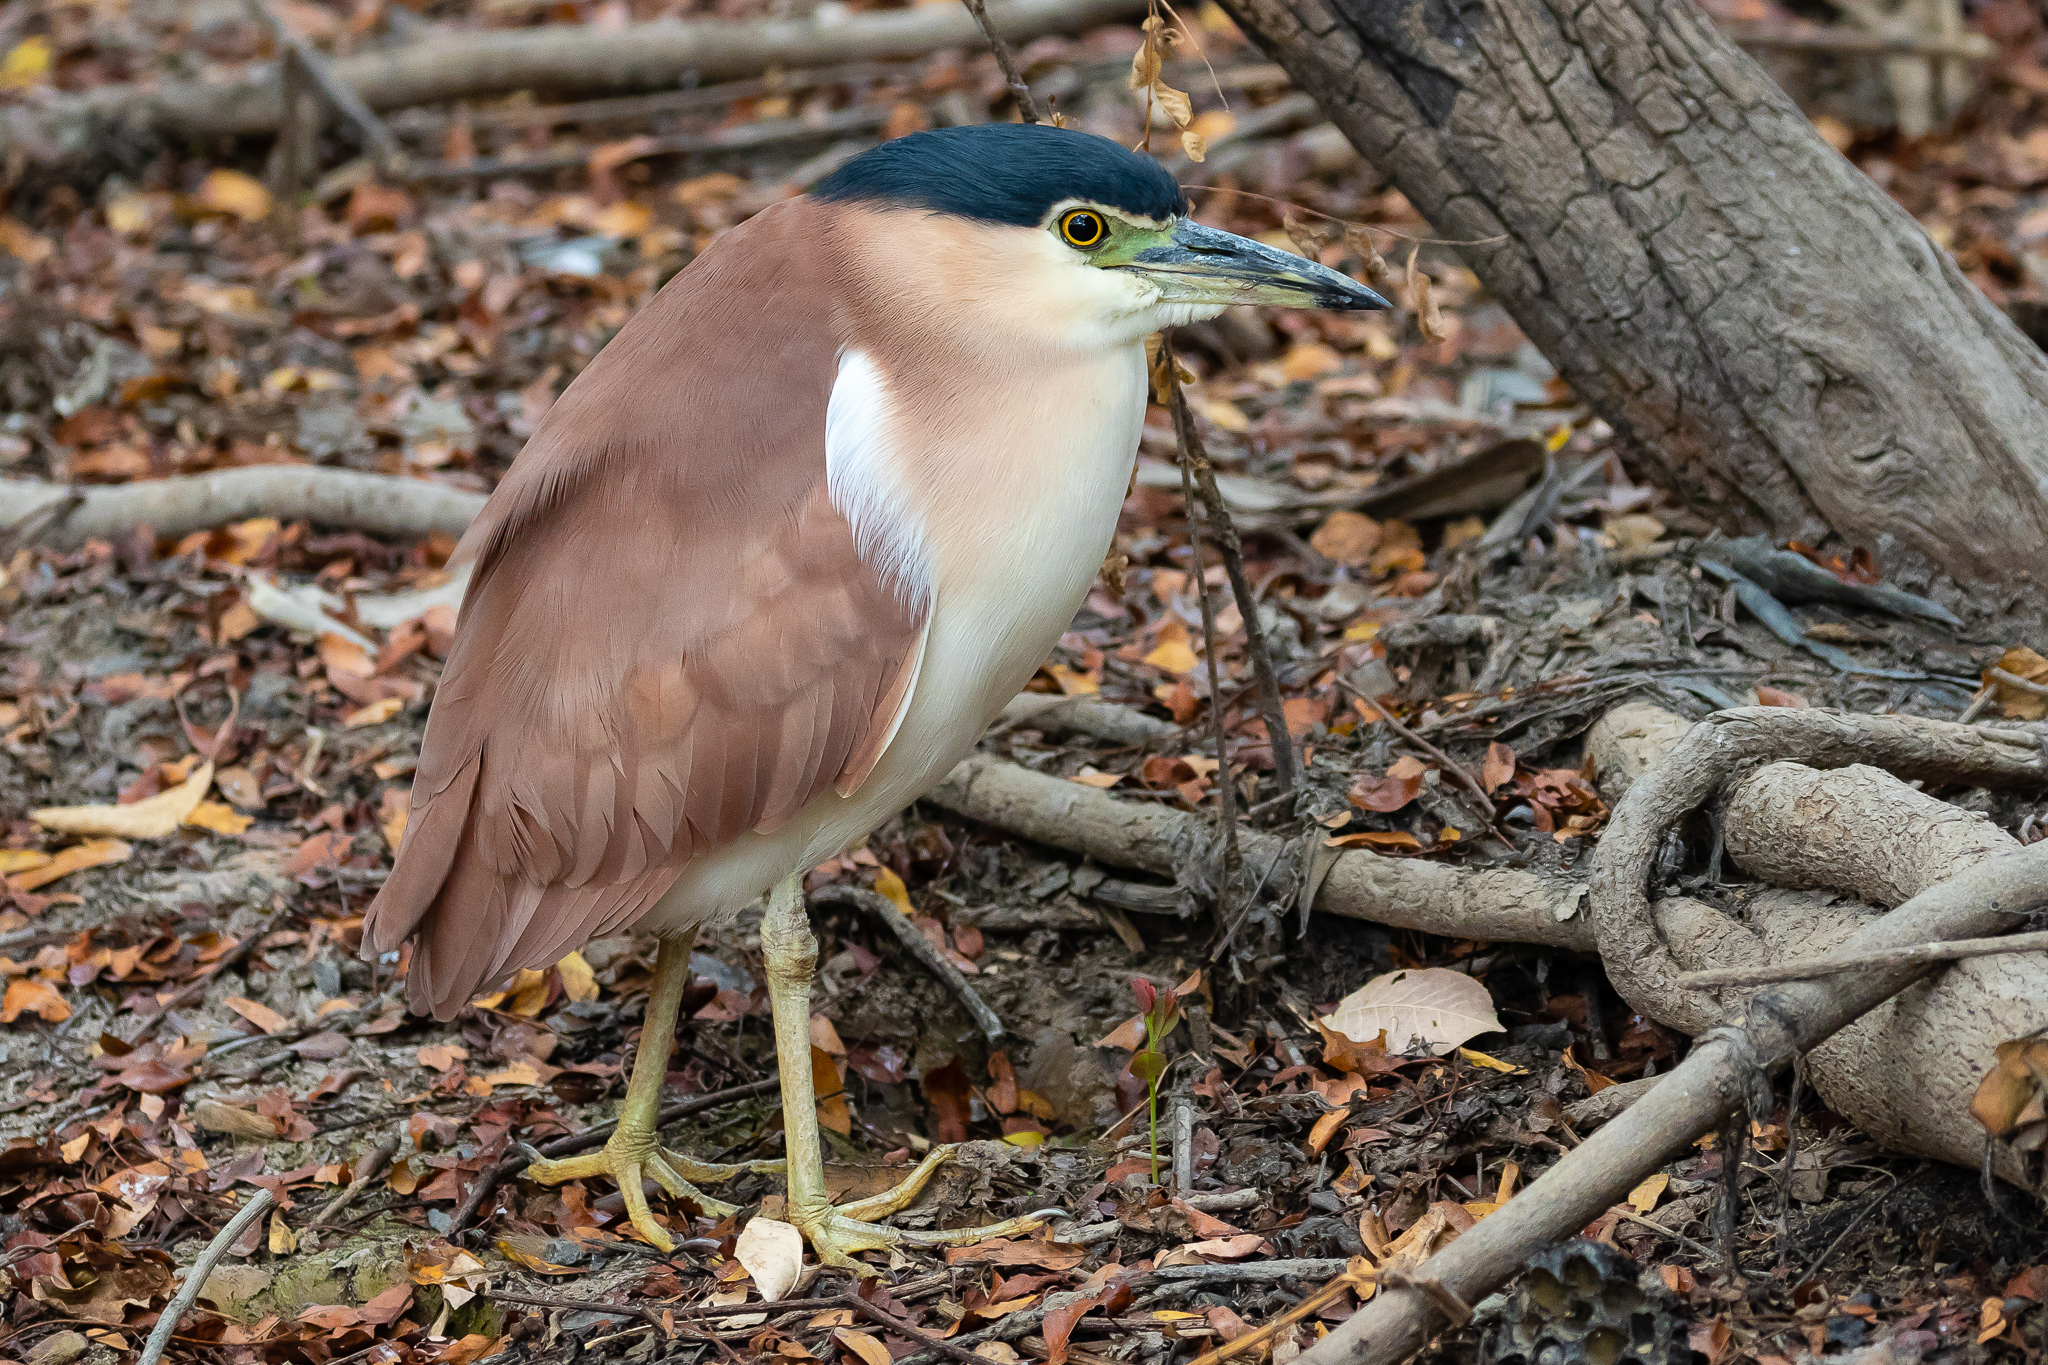 A Nankeen Night-Heron on the bank of Yellow Water lagoon. Nankeen Night-Herons can be seen in most parts of Australia.